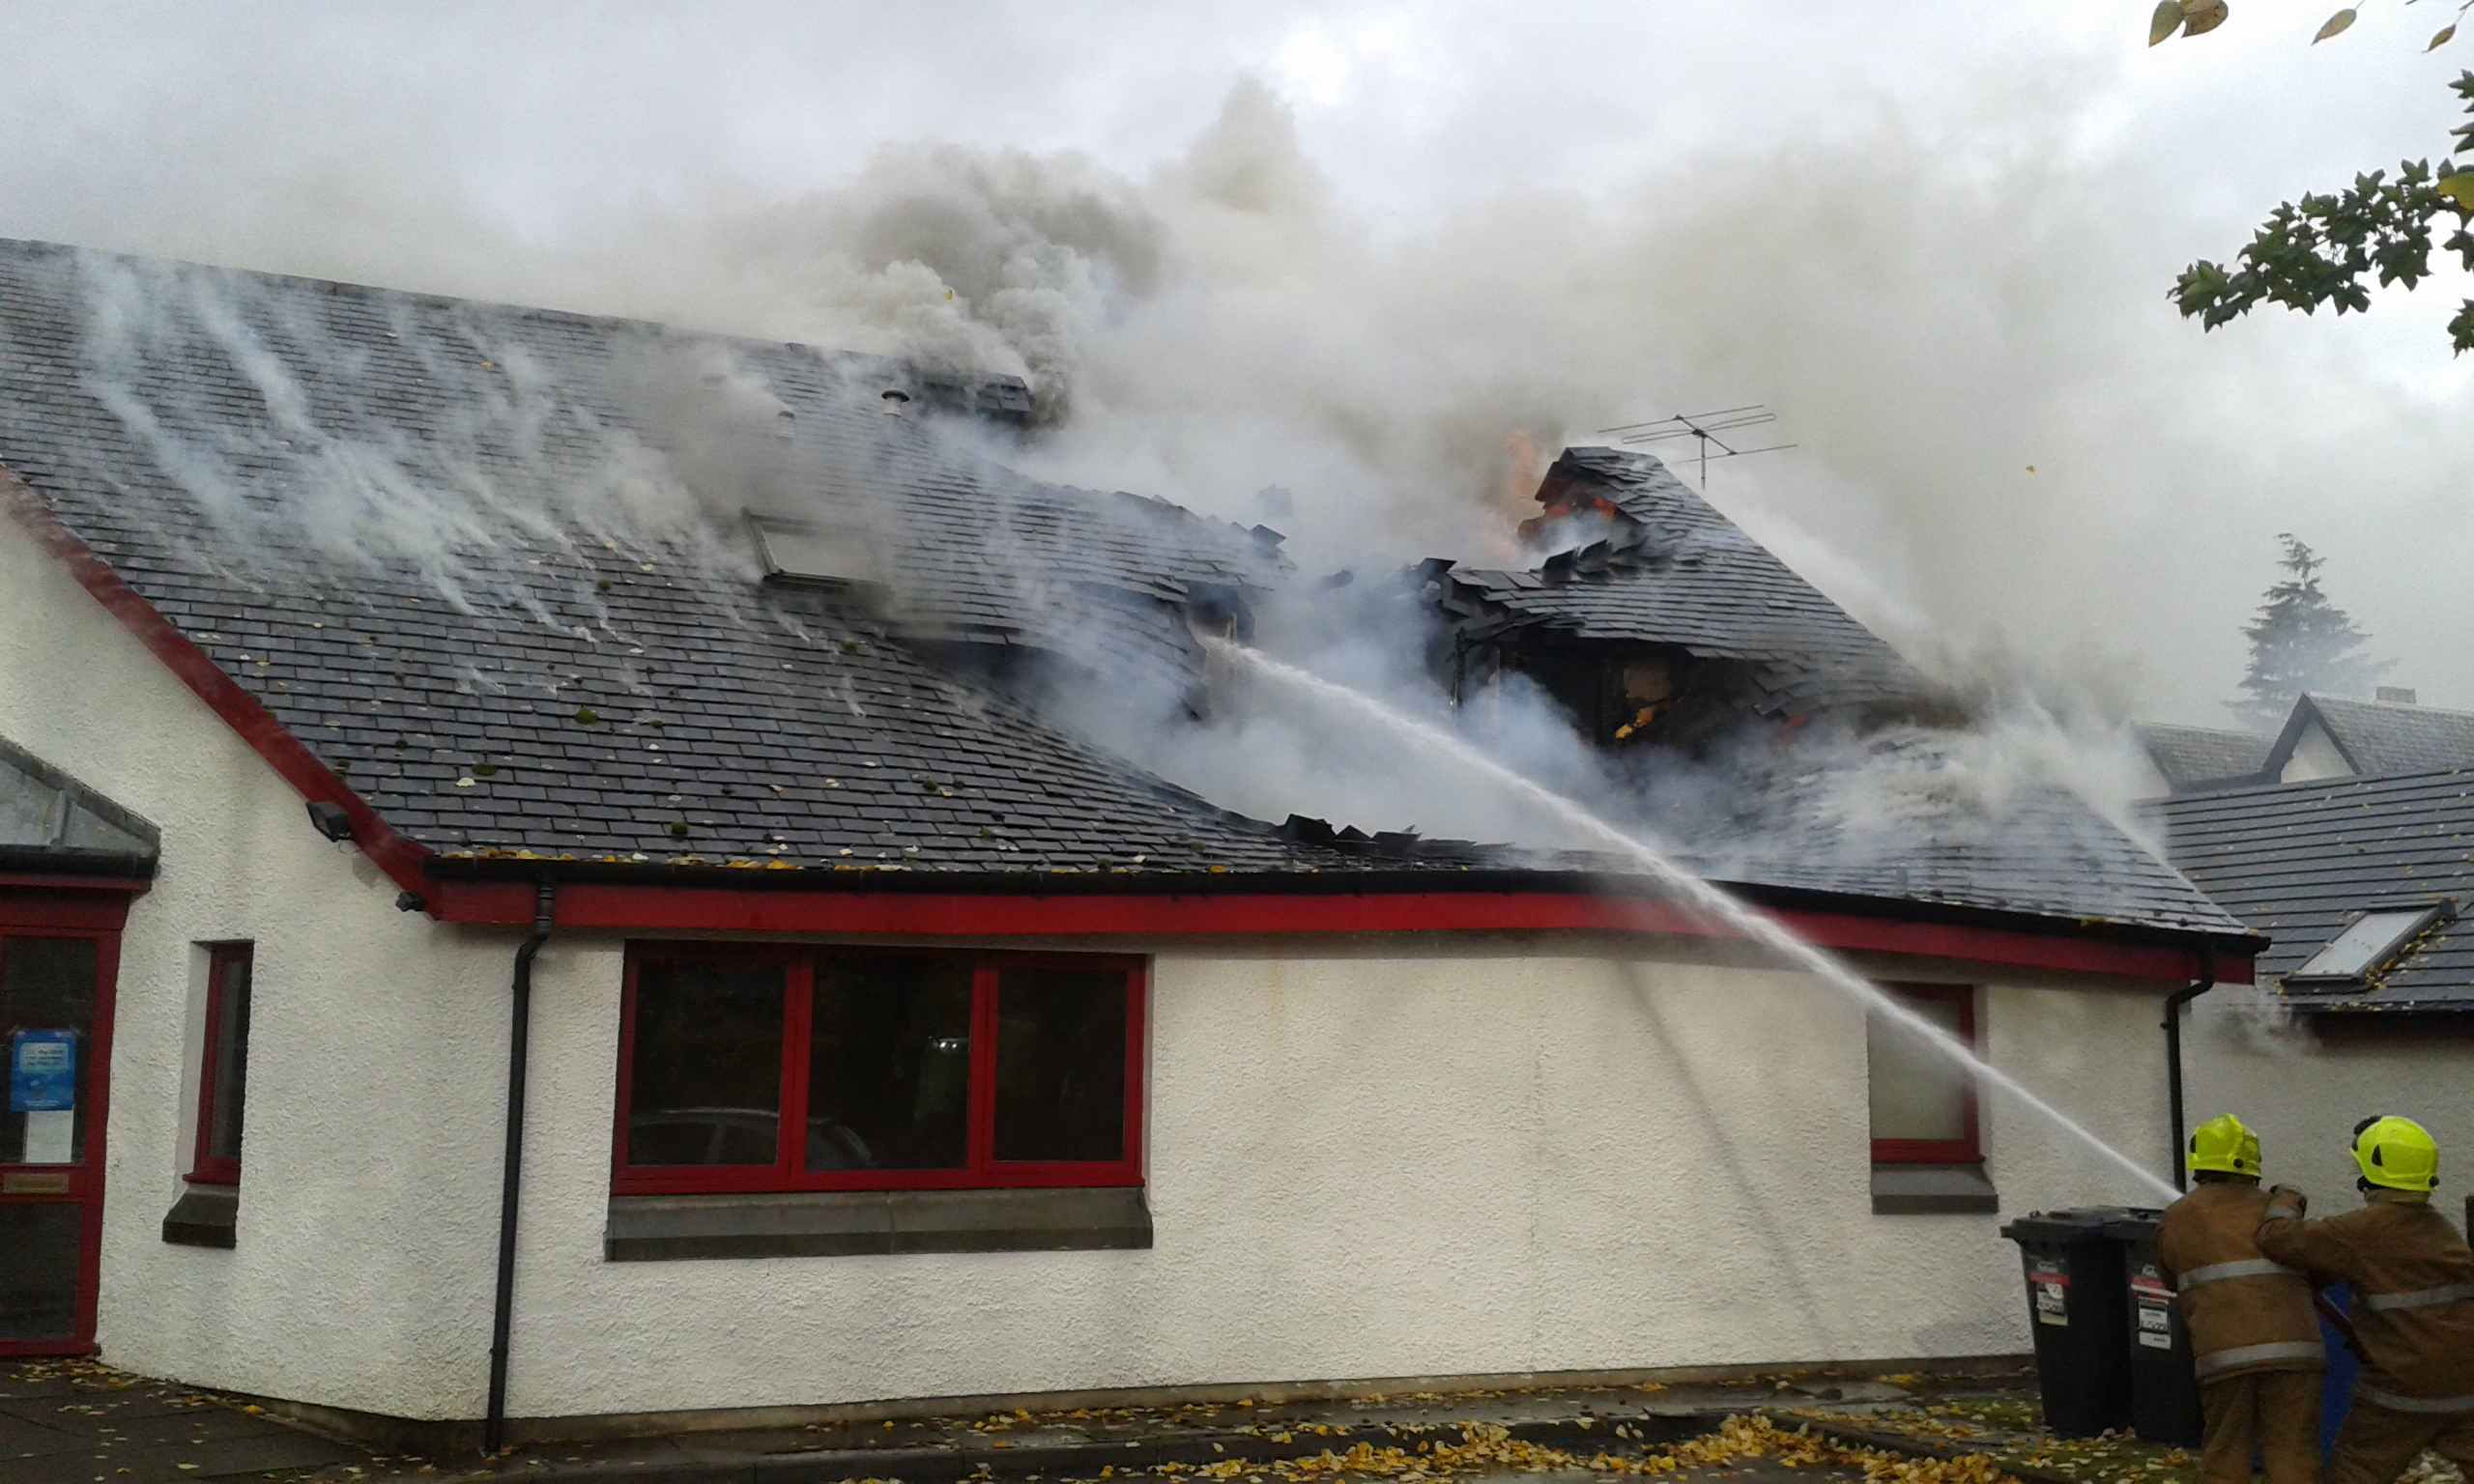 SFRS dealt with fire at Fort Augustus health centre